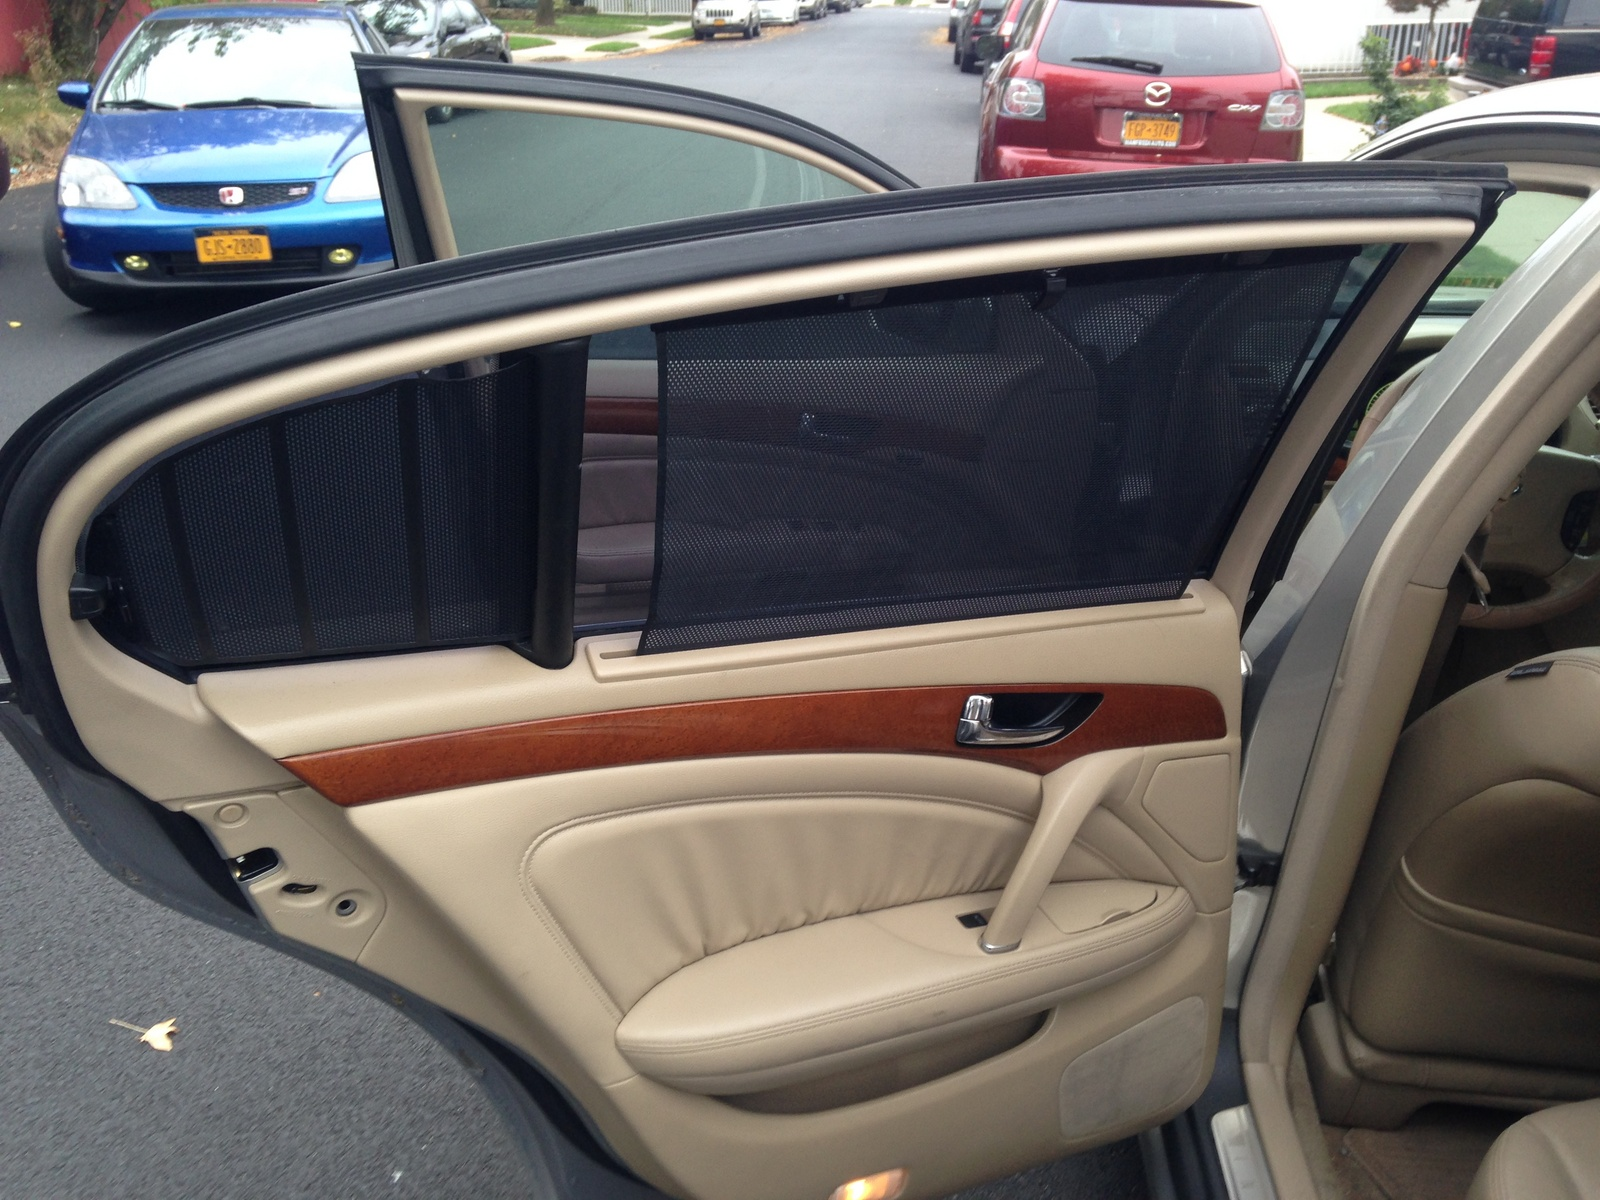 Picture of 2003 Infiniti Q45 4 Dr STD Sedan, interior